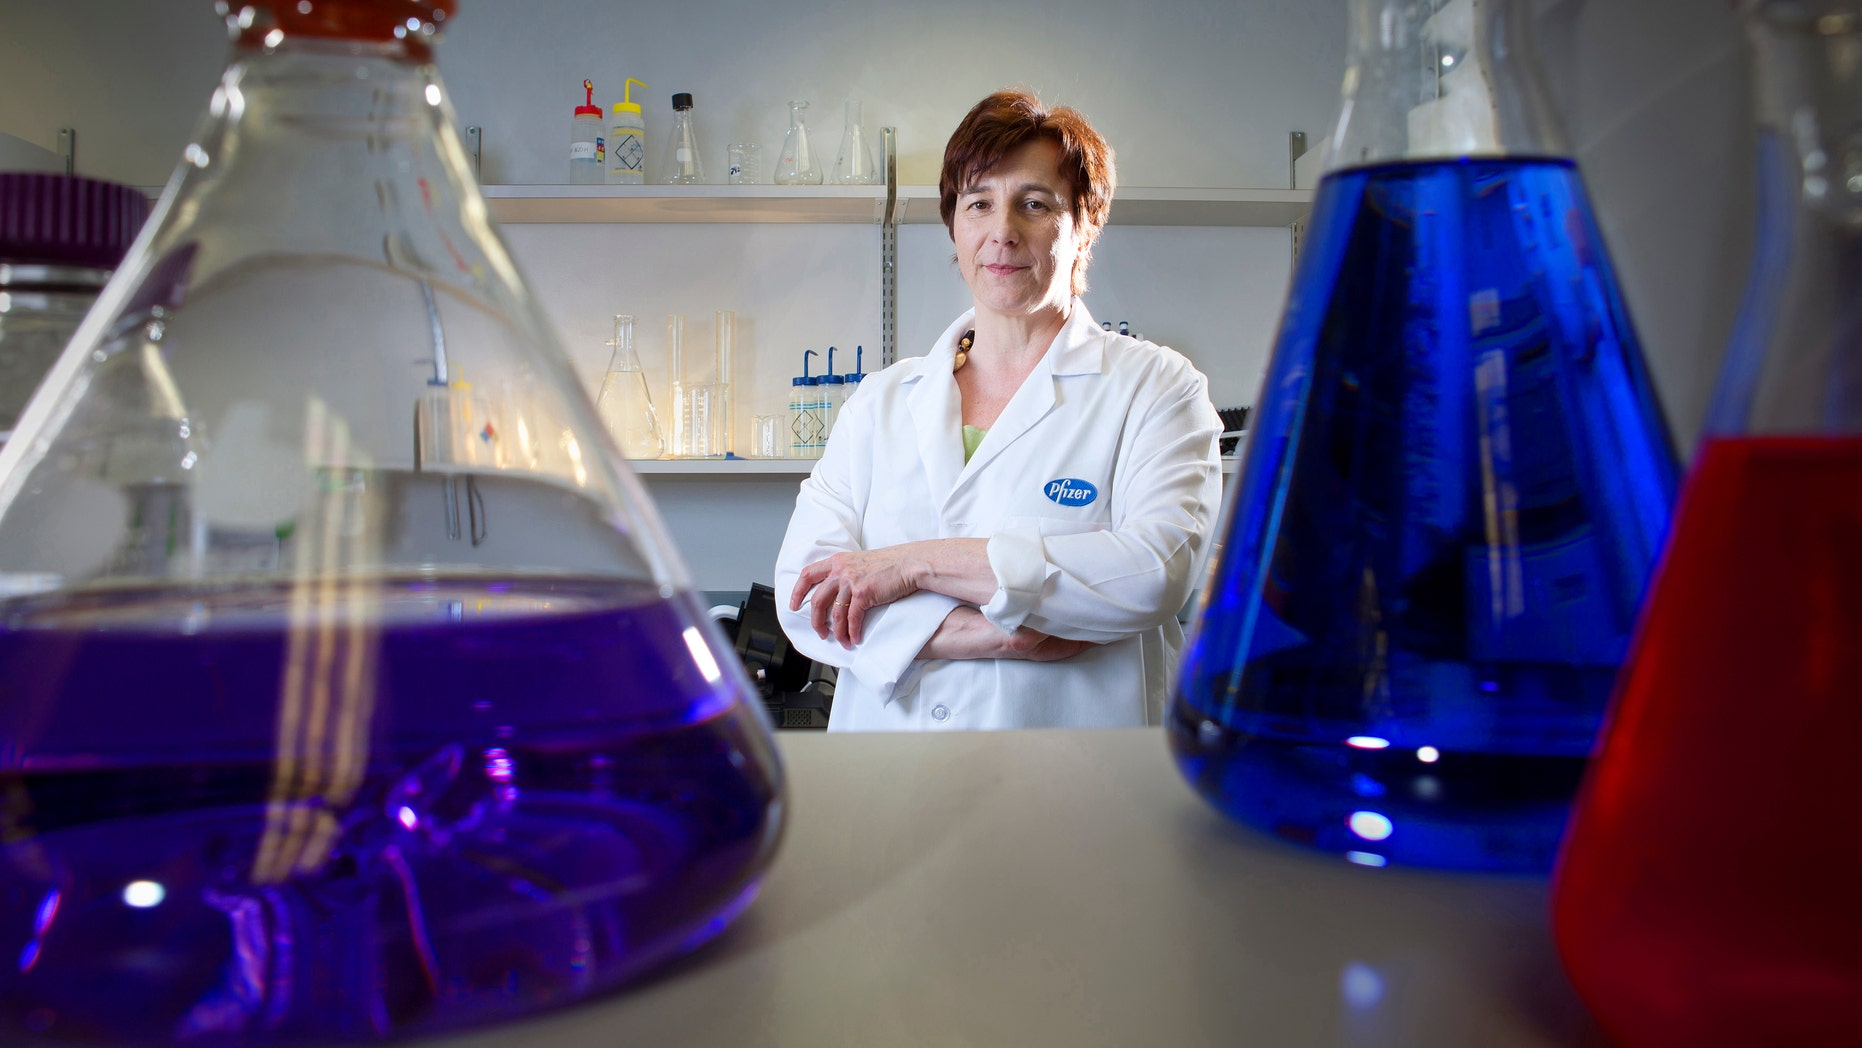 Kathrin Jansen, senior vice president of Vaccine Research and Early Development at Pfizer Inc, poses for a portrait in one of her labs at Pfizer headquarters in Pearl River, New York.